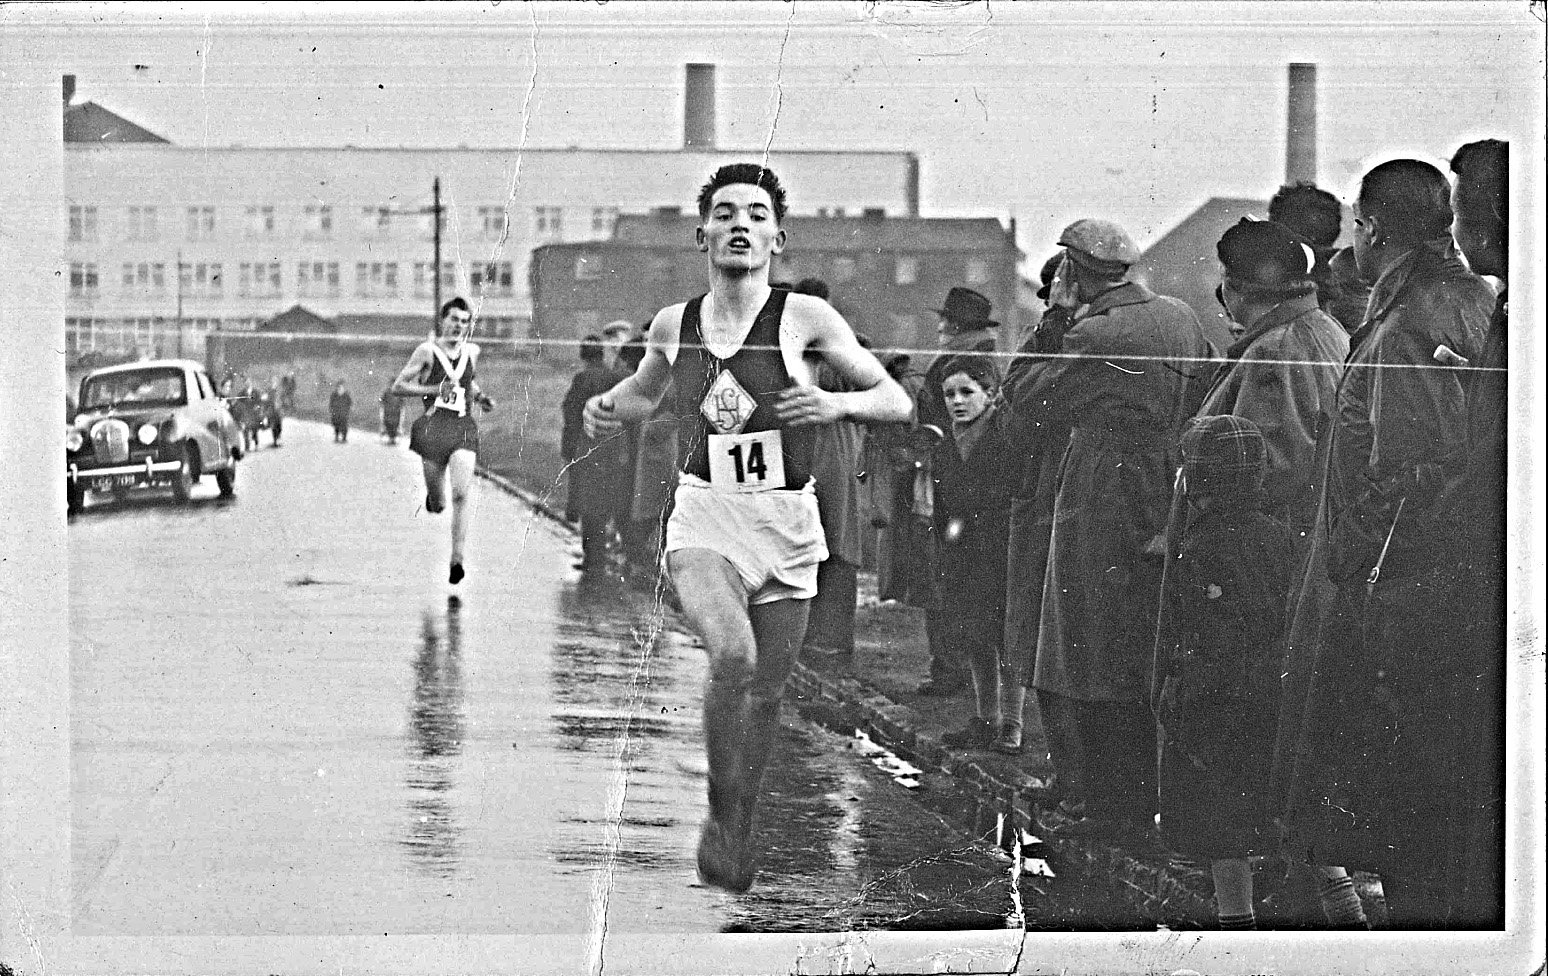 eddie-sinclair-and-bill-goodwin-clydesdale-harriers-youths-ballot-race-1954